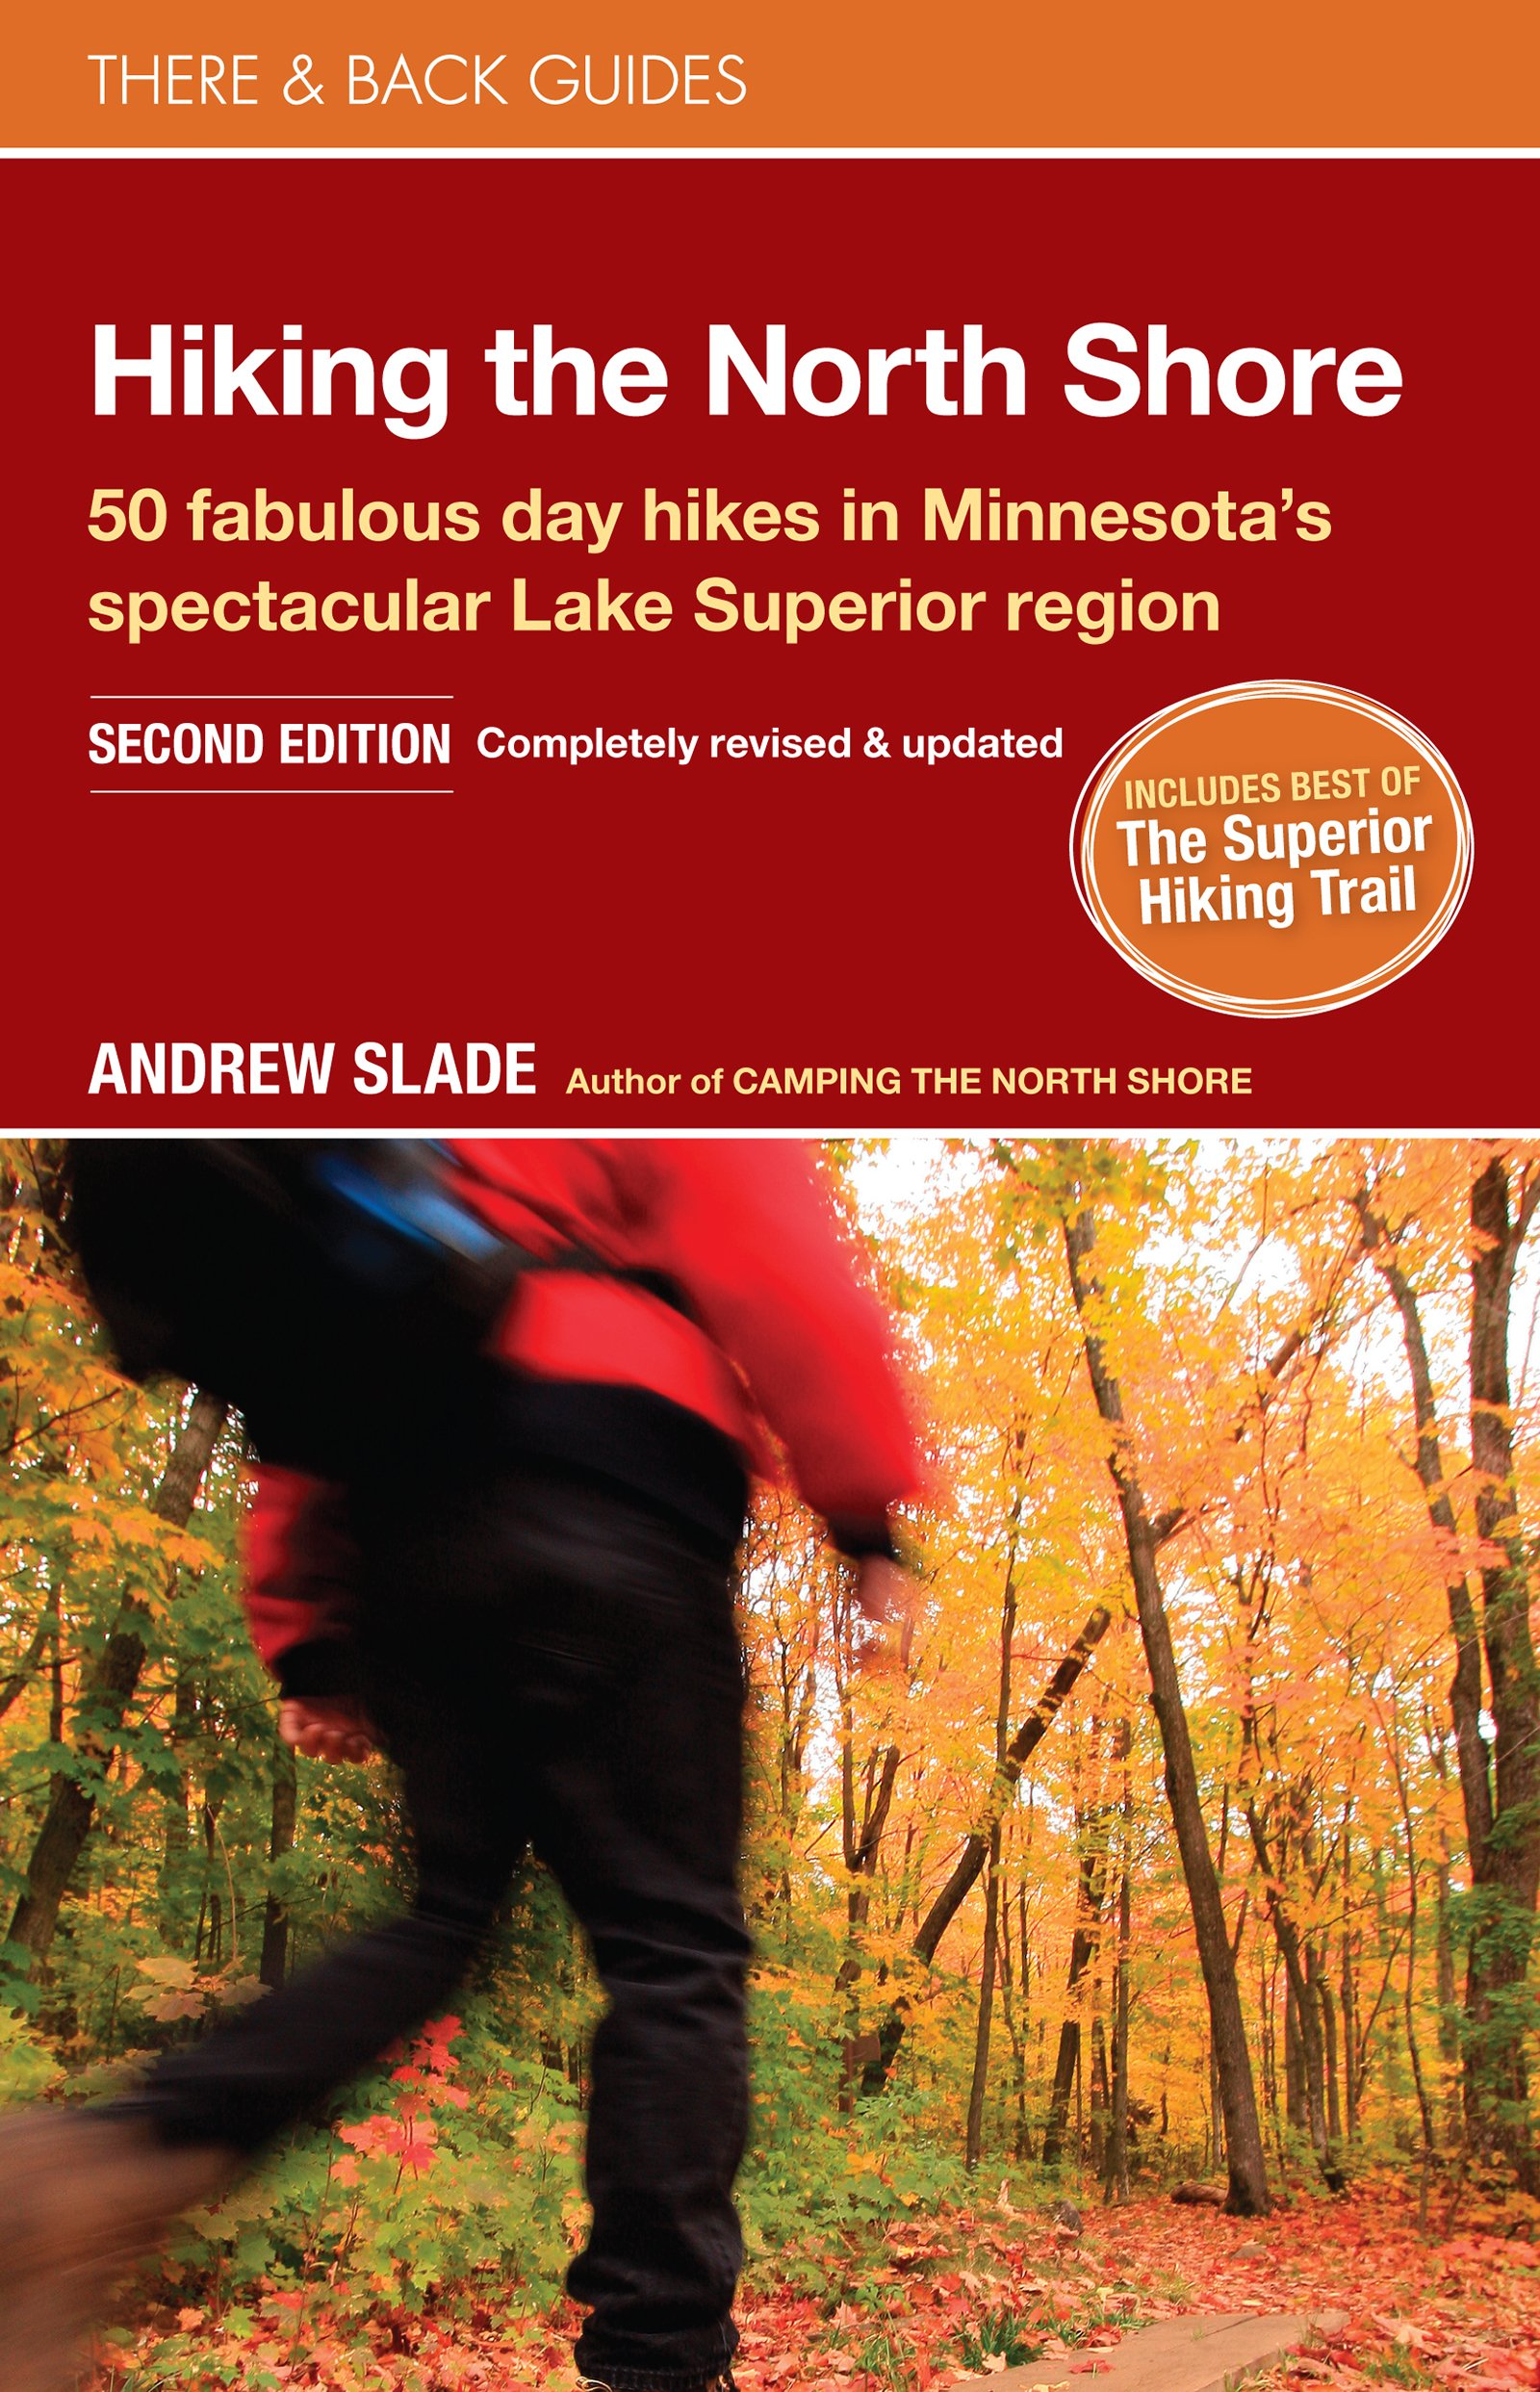 Download Hiking the North Shore: 50 fabulous day hikes in Minnesota's spectacular Lake Superior region (There & Back Guides) pdf